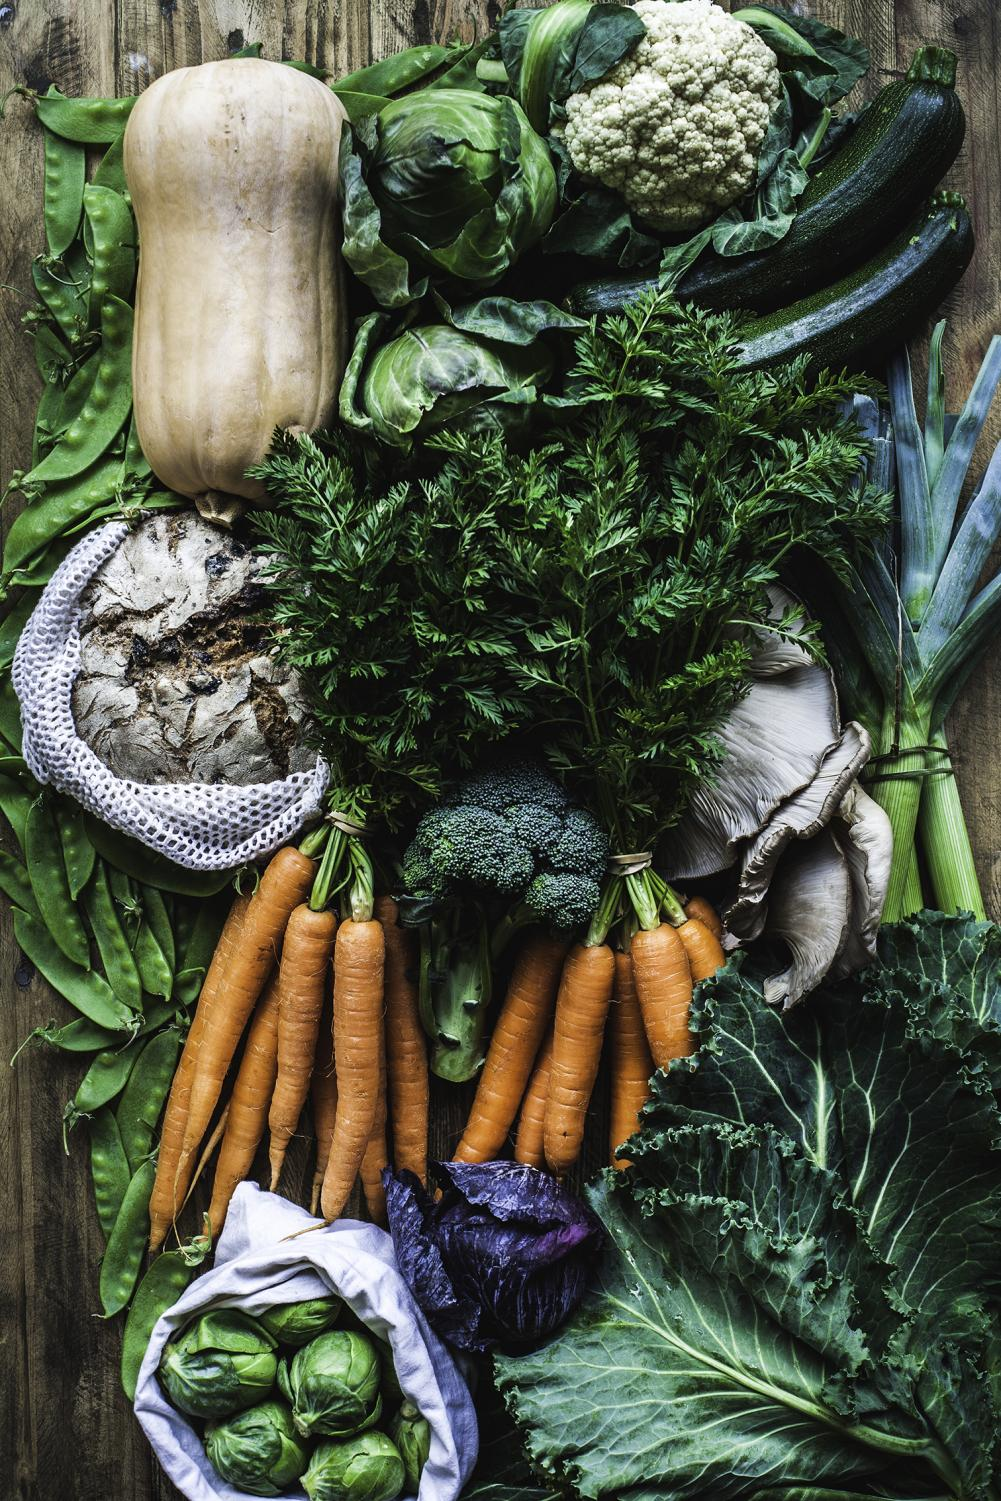 Fresh vegetables, mushrooms, and bread are shown on a flatlay ready for the farmer's market.